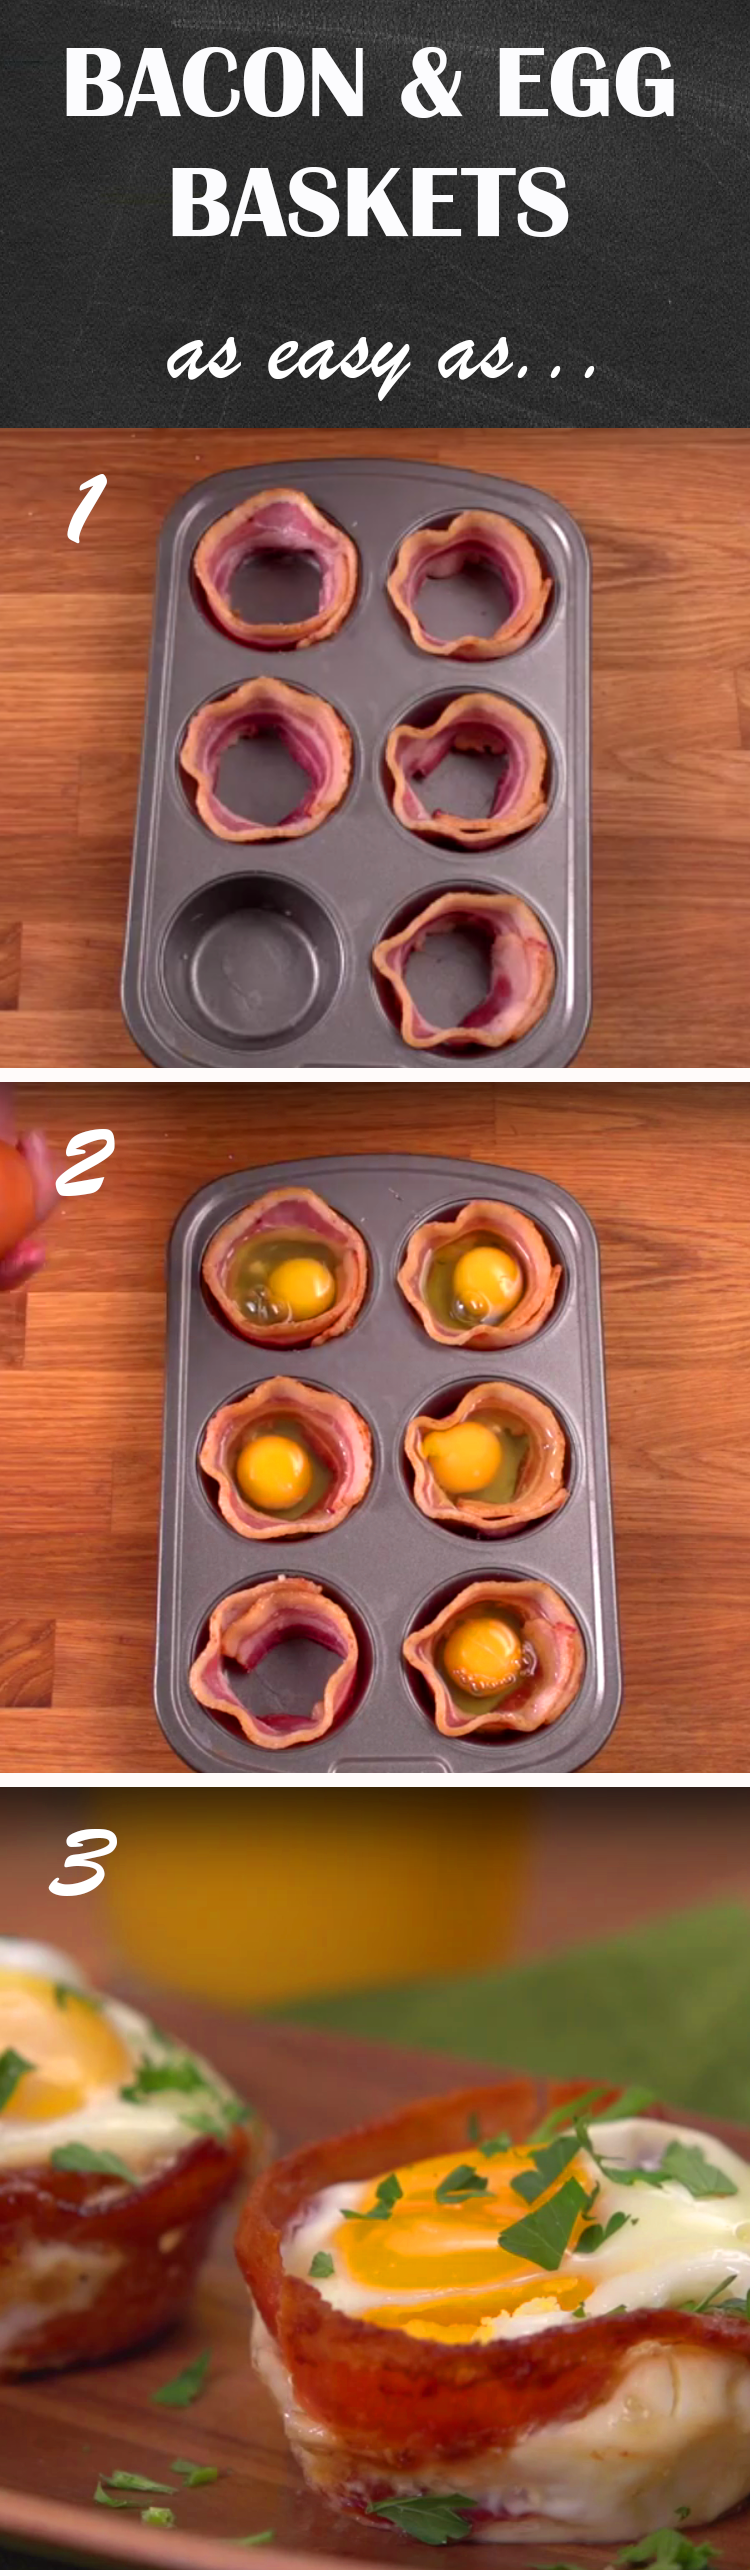 Bacon & Egg Baskets Recipe   Here's a fun way to prepare bacon and eggs that will earn you bonus points for presentation. And all you need is a muffin tin to make it happen! Click for the short how-to.